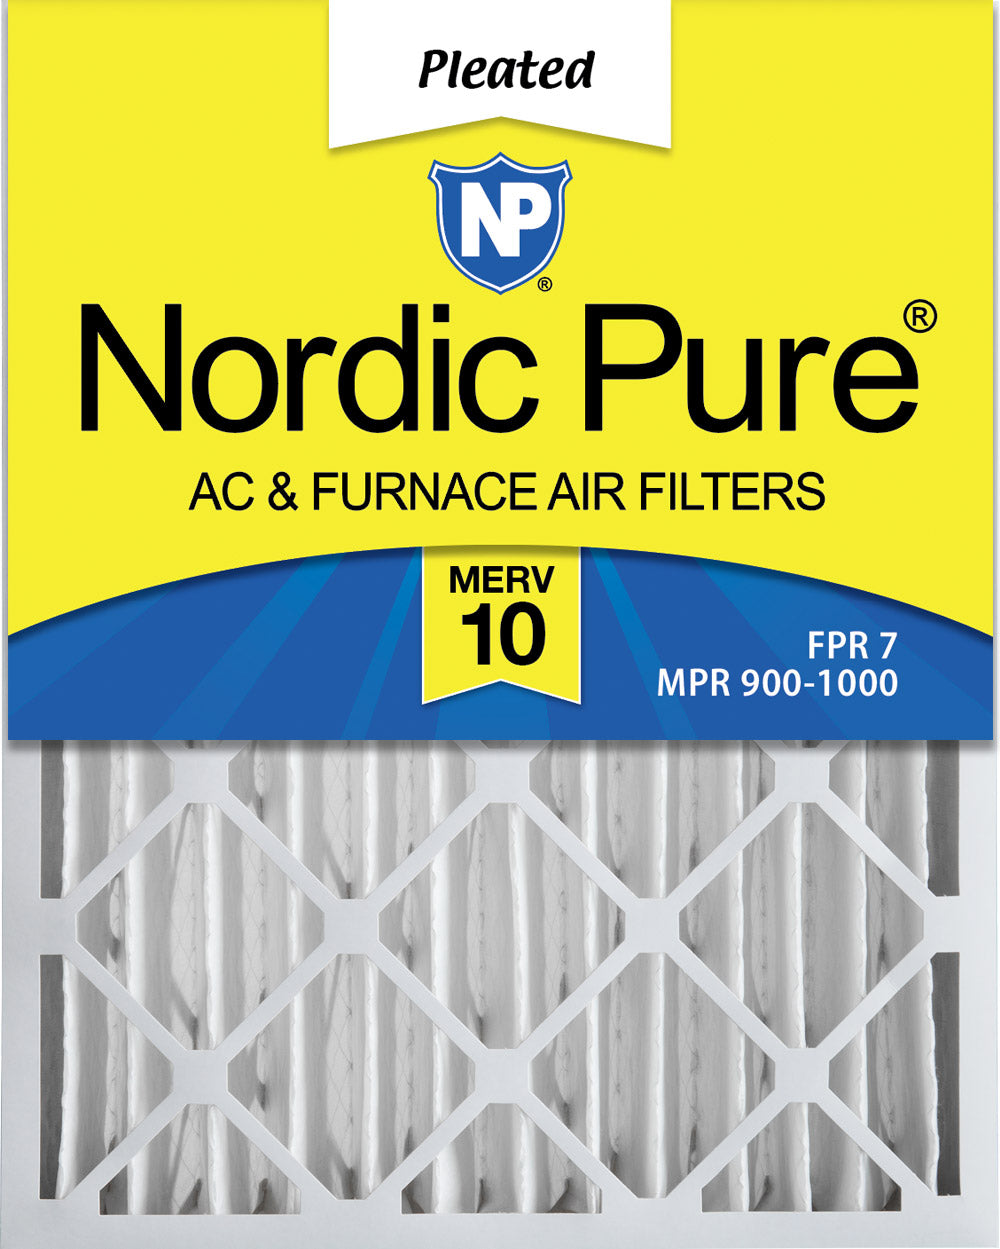 16x25x4 (3 5/8) Pleated MERV 10 Air Filters 1 Pack